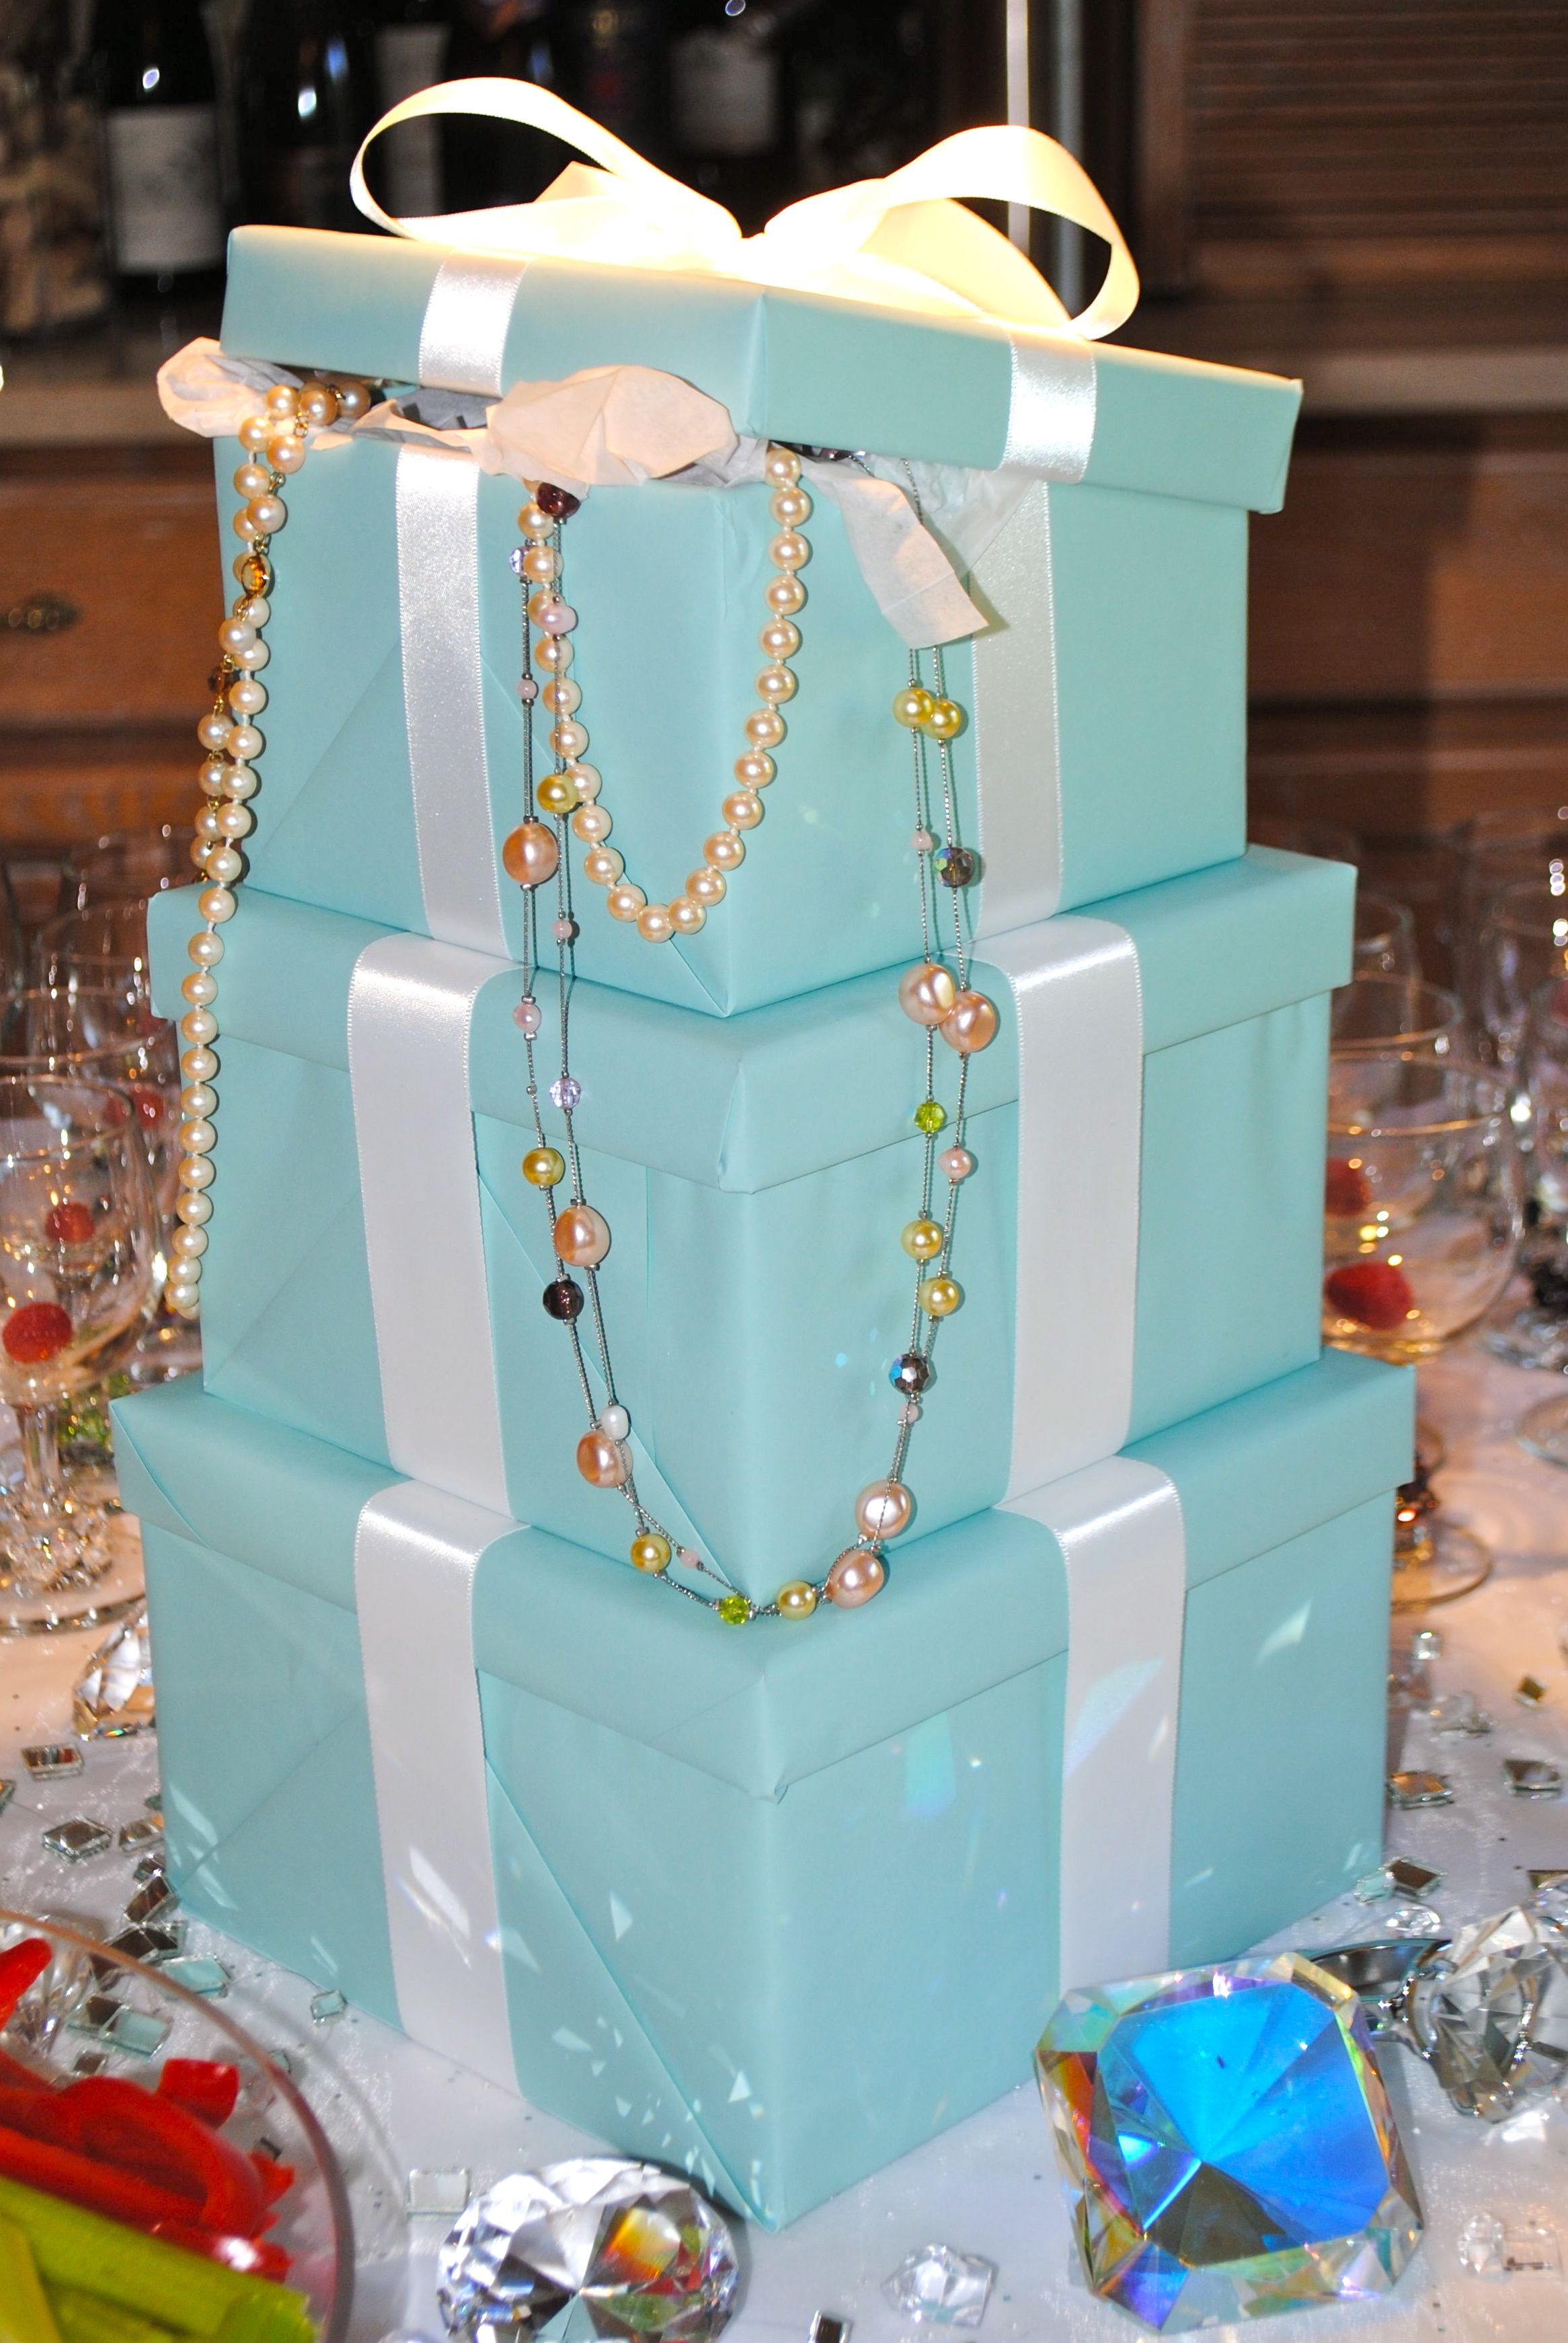 Tiffany Co Inspired Holiday Winter Party A Chic Theme That